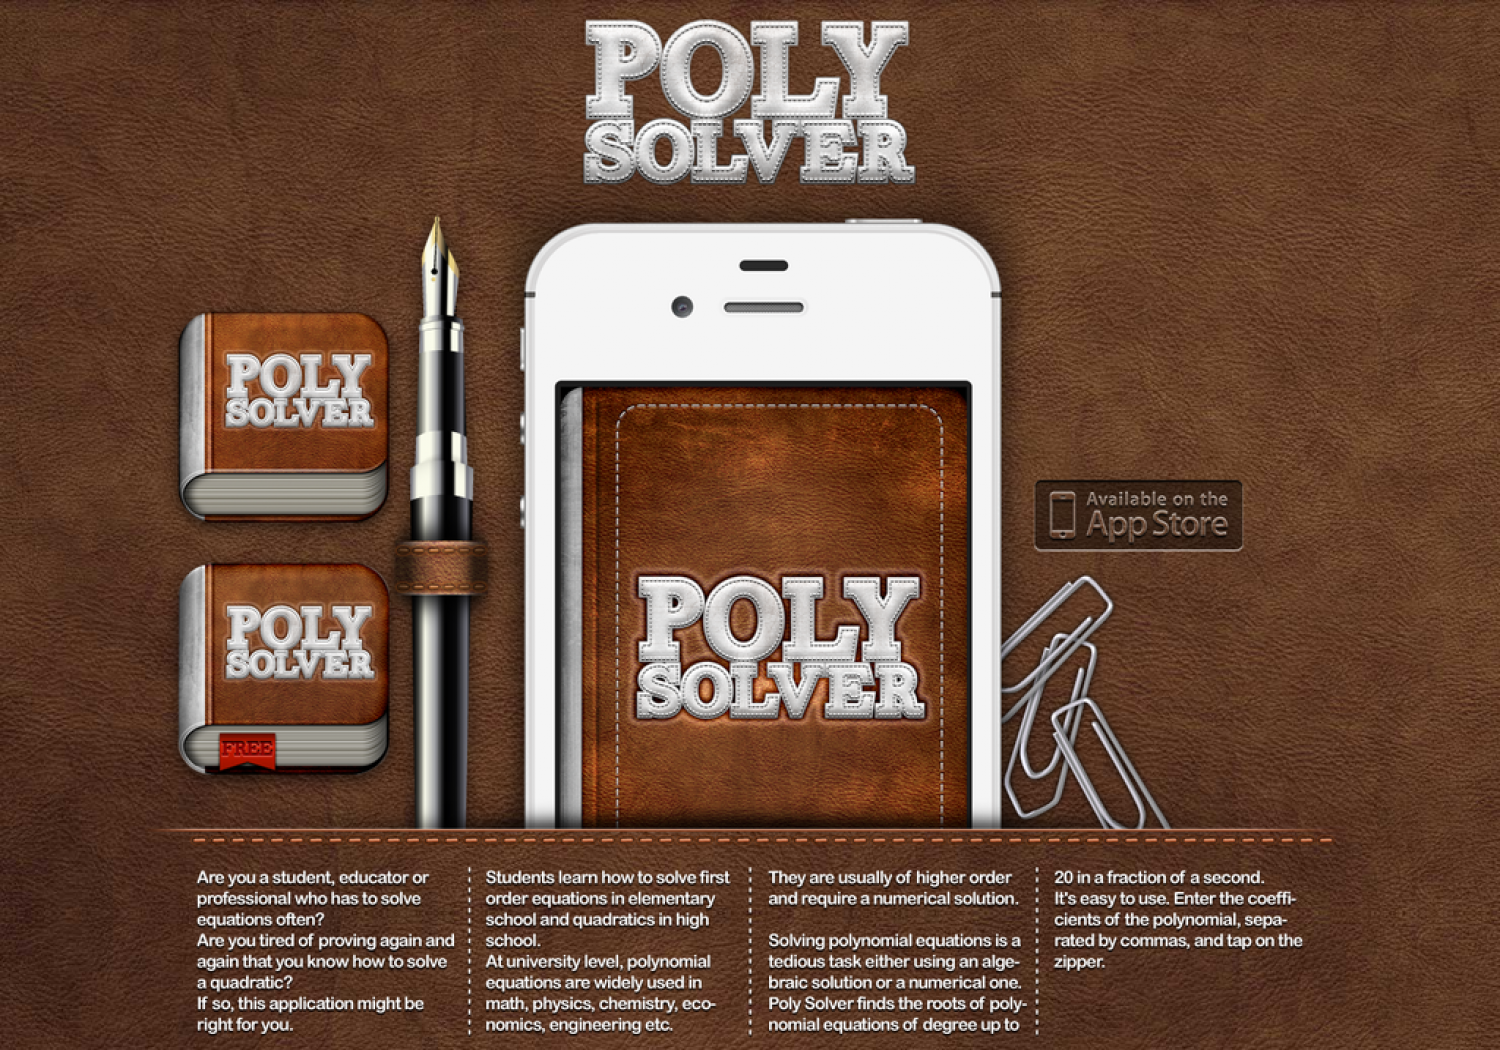 PolySolver Infographic